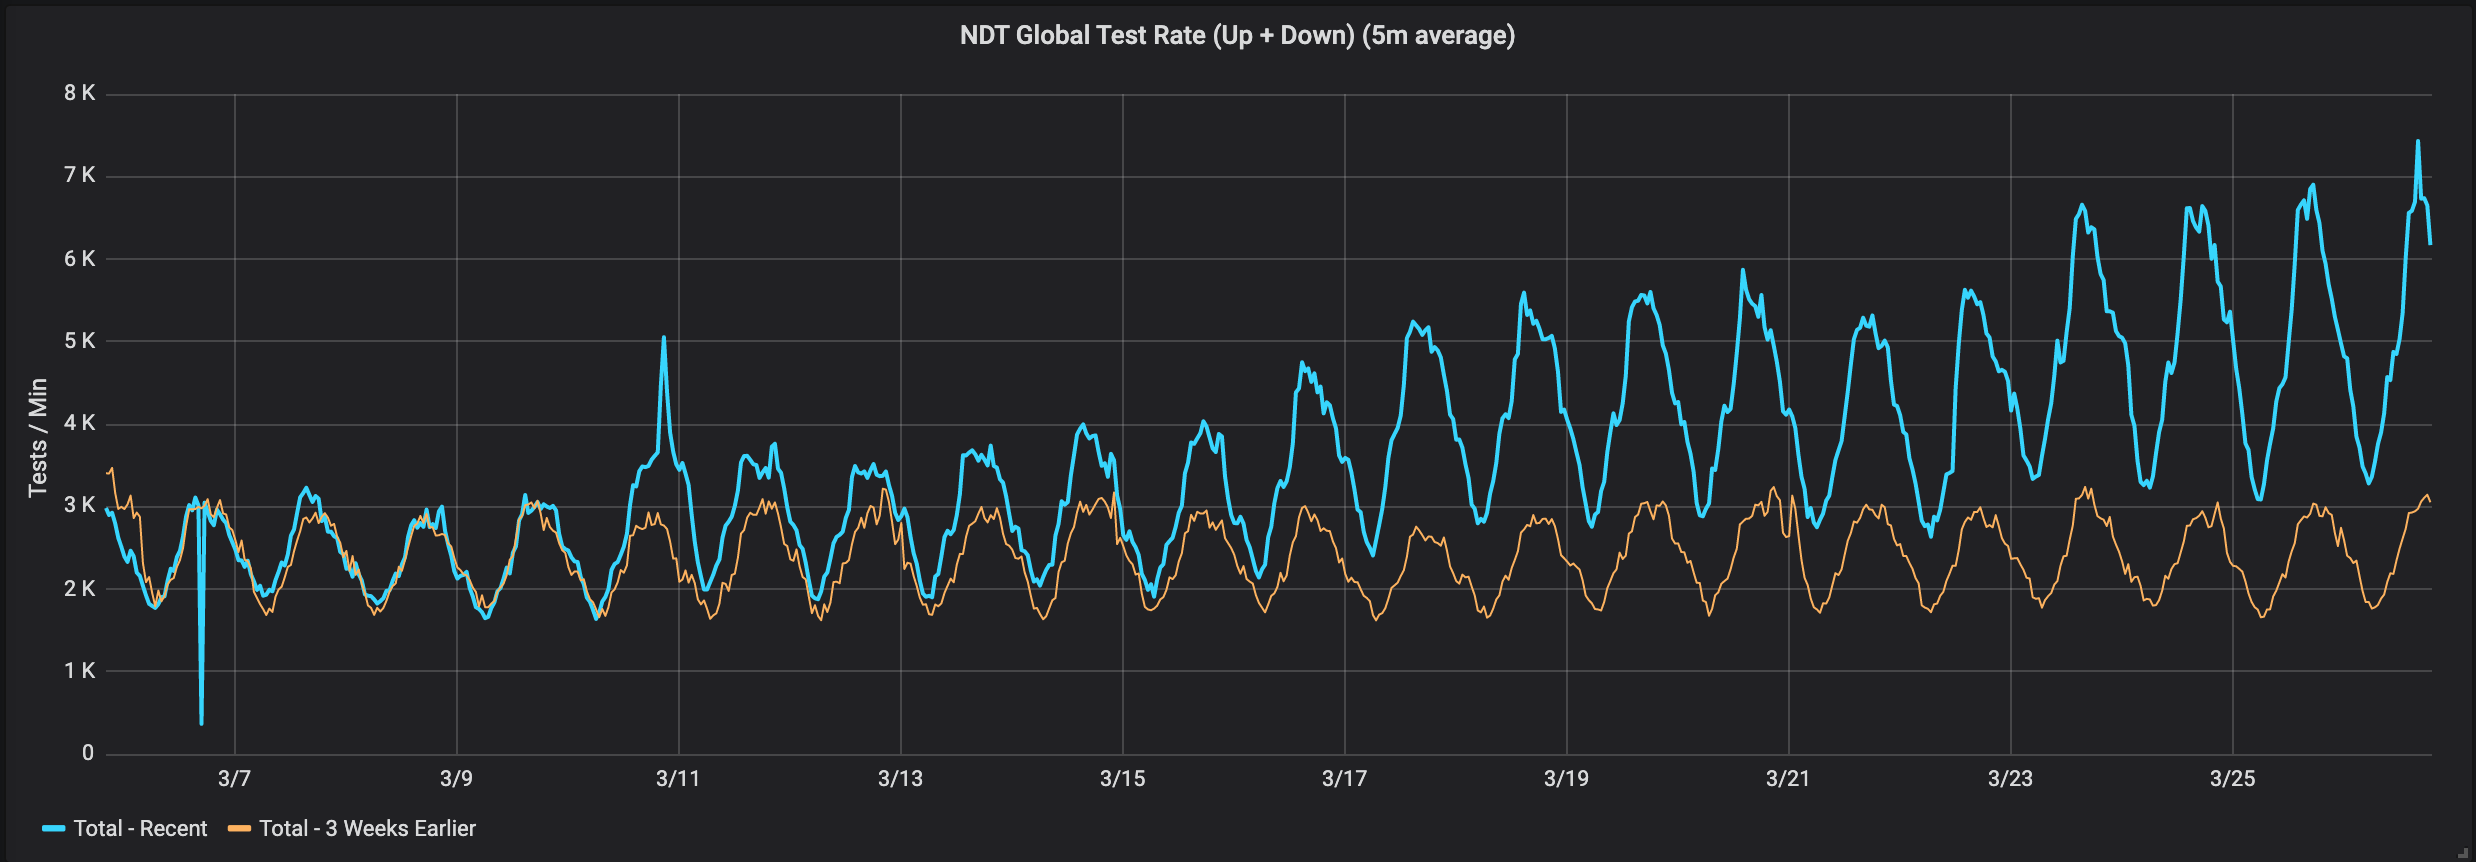 NDT Global Test Rate (tests/min)